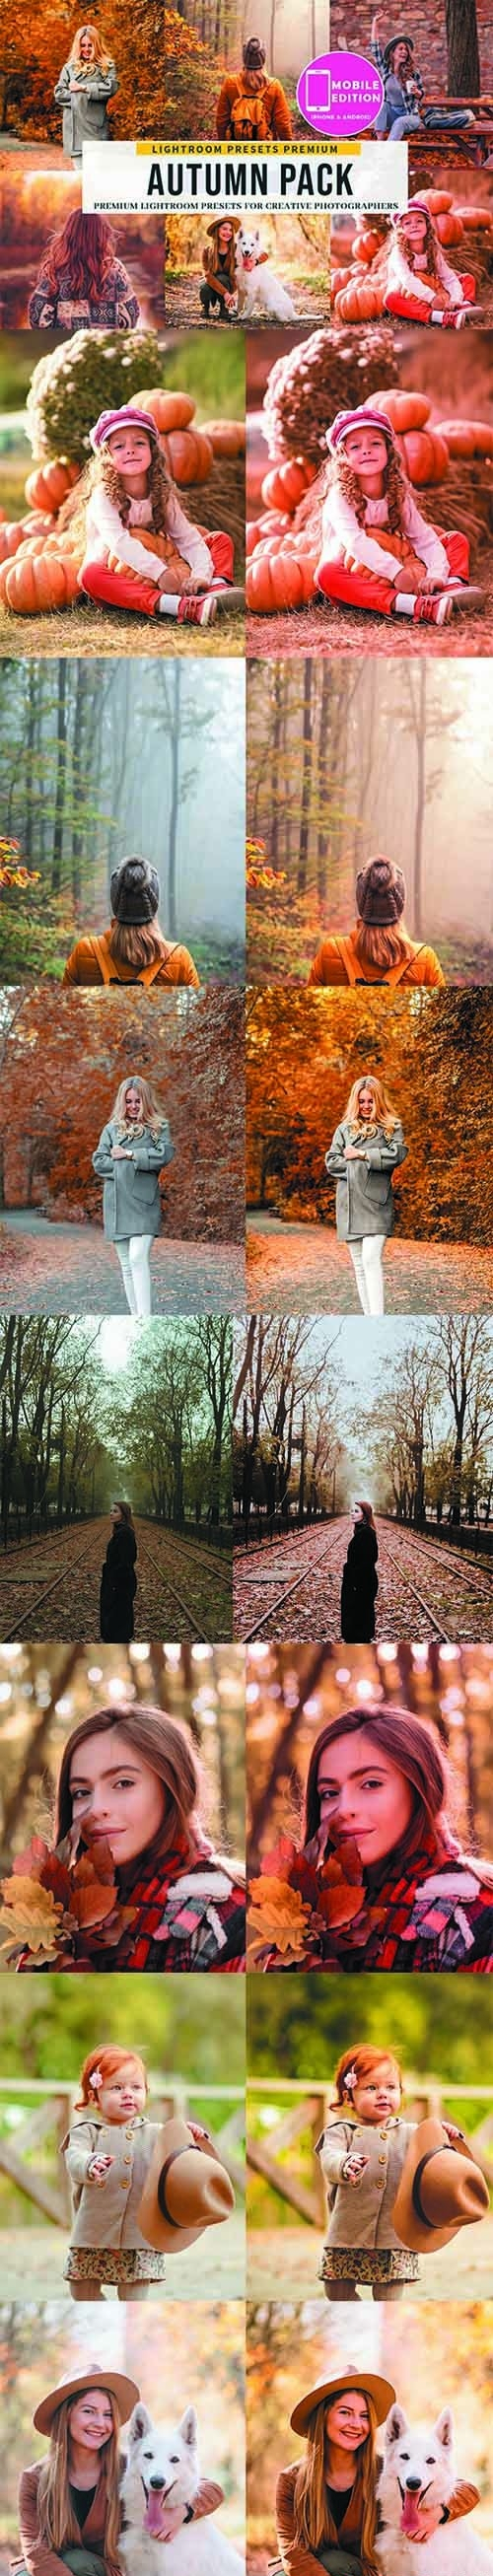 The Autumn Lightroom Presets 5506478